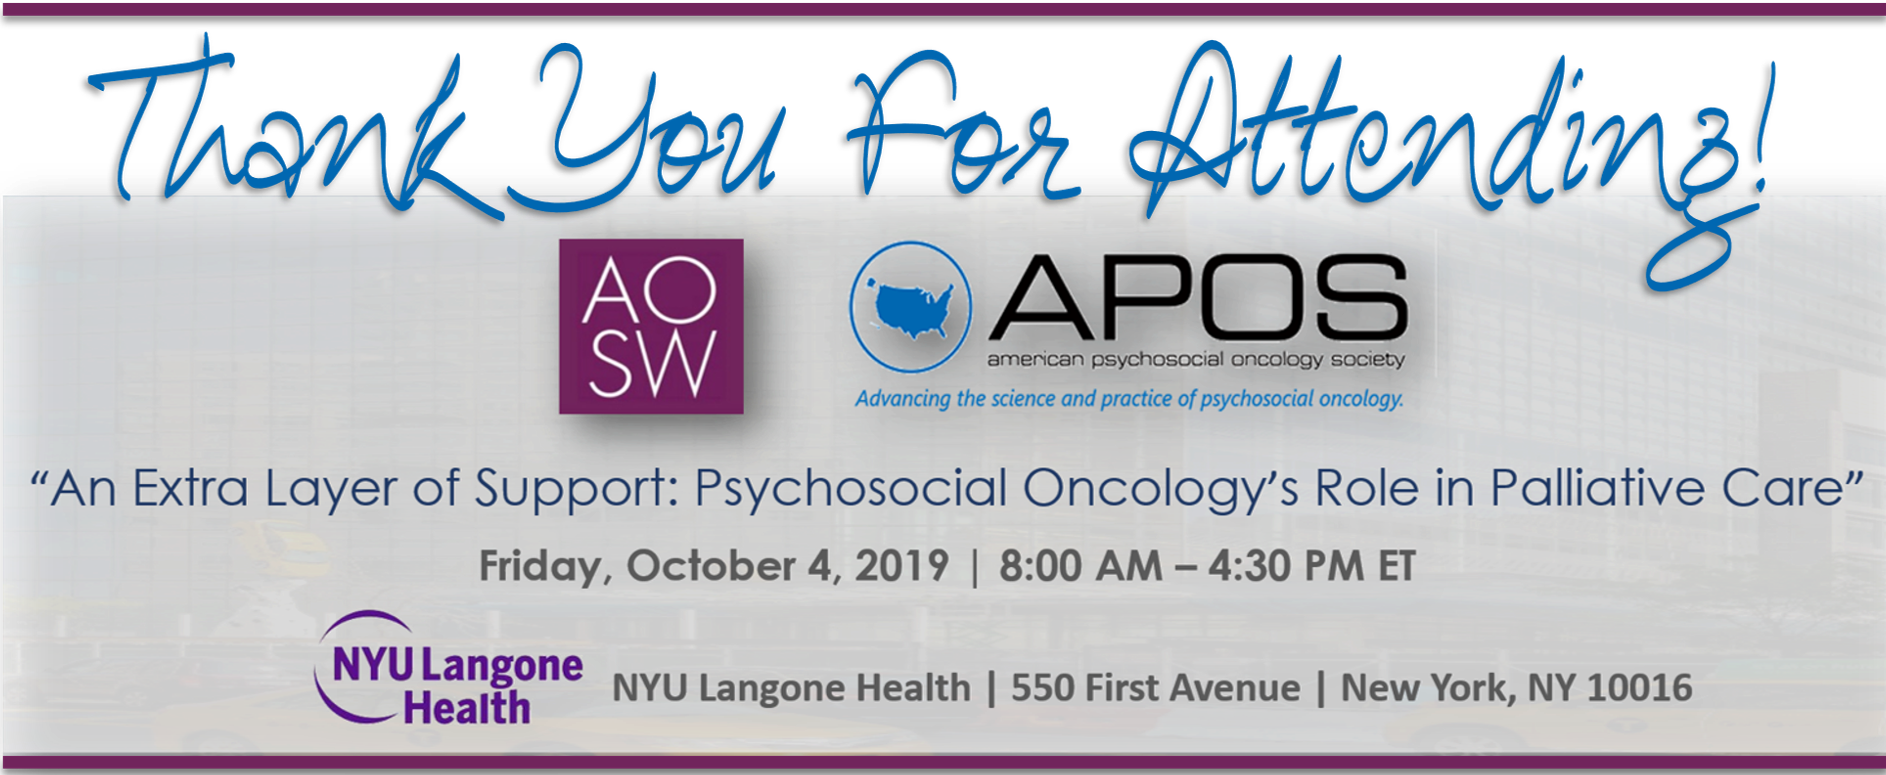 American Psychosocial Oncology Society